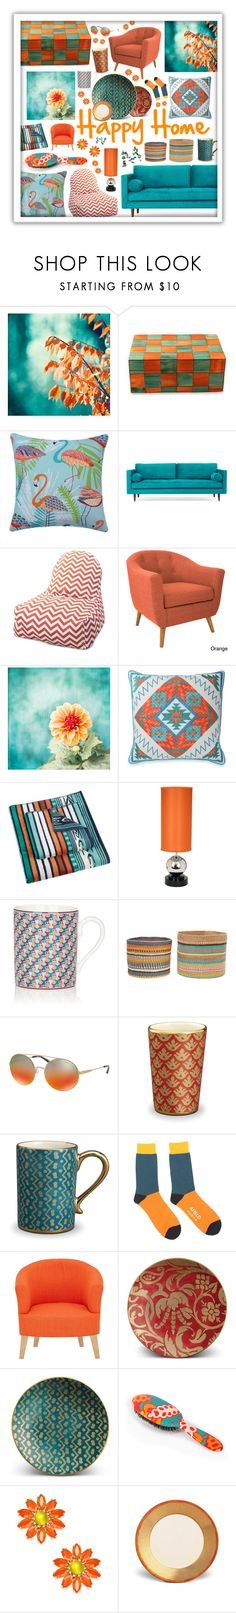 """""""Goldfish Bowl inspired HOME"""" by beanpod ❤ liked on Polyvore featuring interior, interiors, interior design, home, home decor, interior decorating, NOVICA, Joybird, Majestic Home Goods and angelo:HOME"""